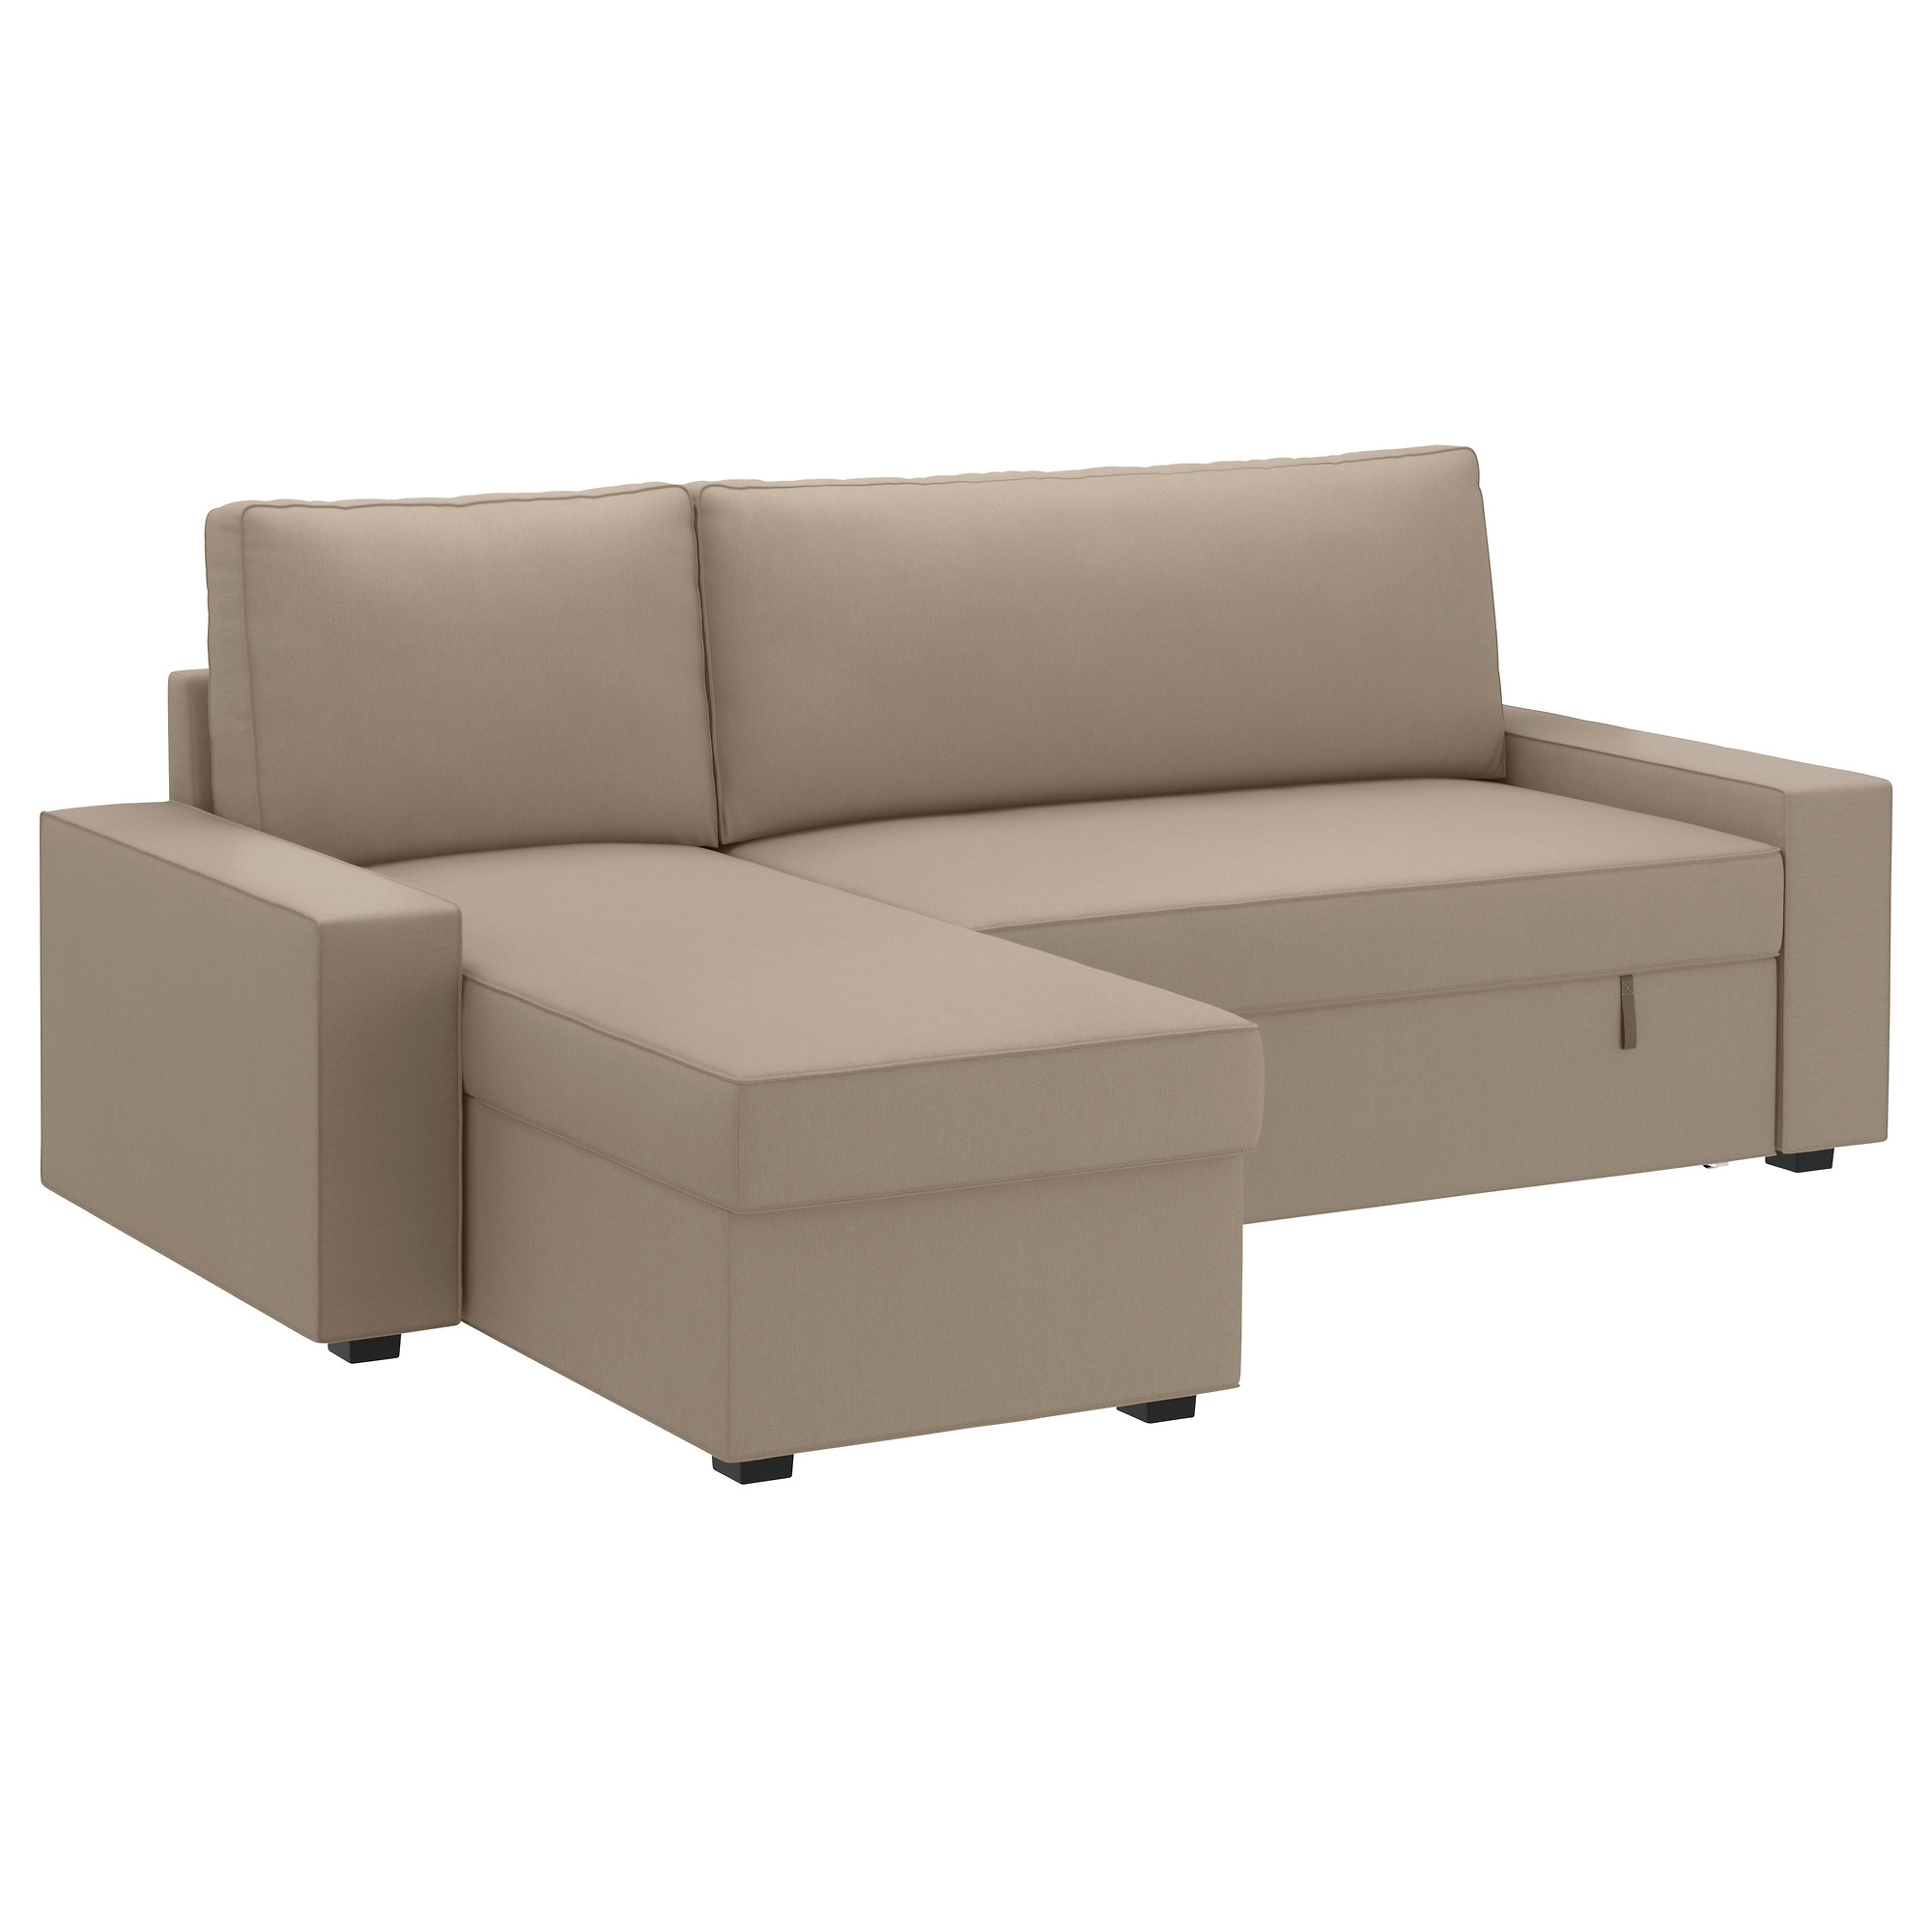 Chaise Loveseats Regarding 2018 Armchair : Small Fold Out Couch Furniture For Tiny Spaces Little (View 6 of 15)